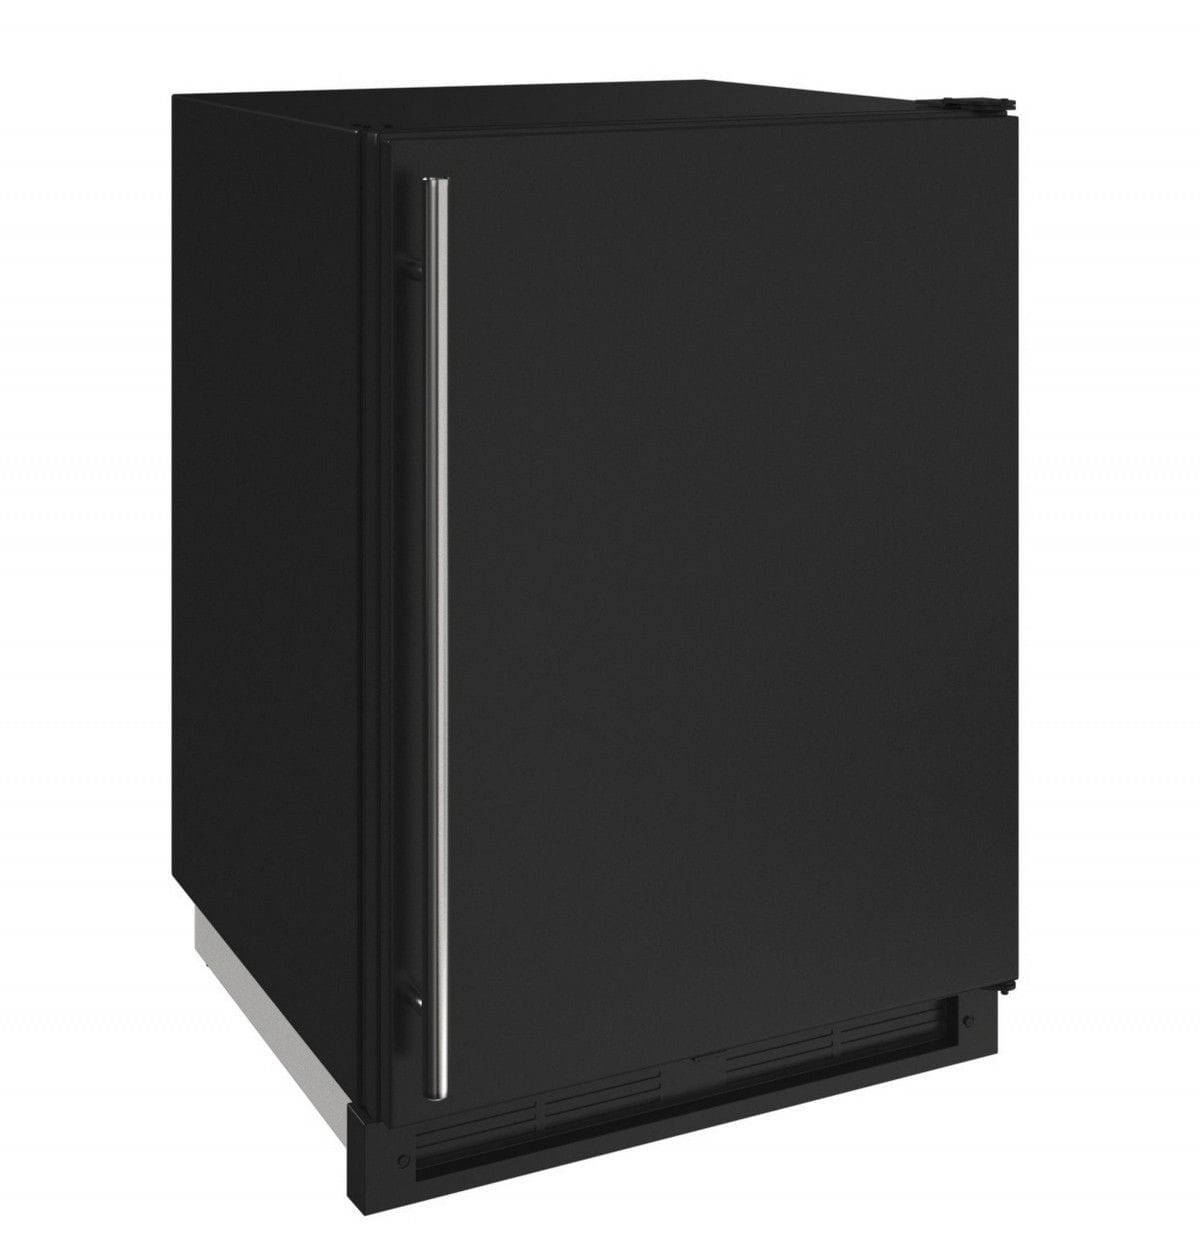 "Freezer 24"" Reversible Hinge Black 115v"